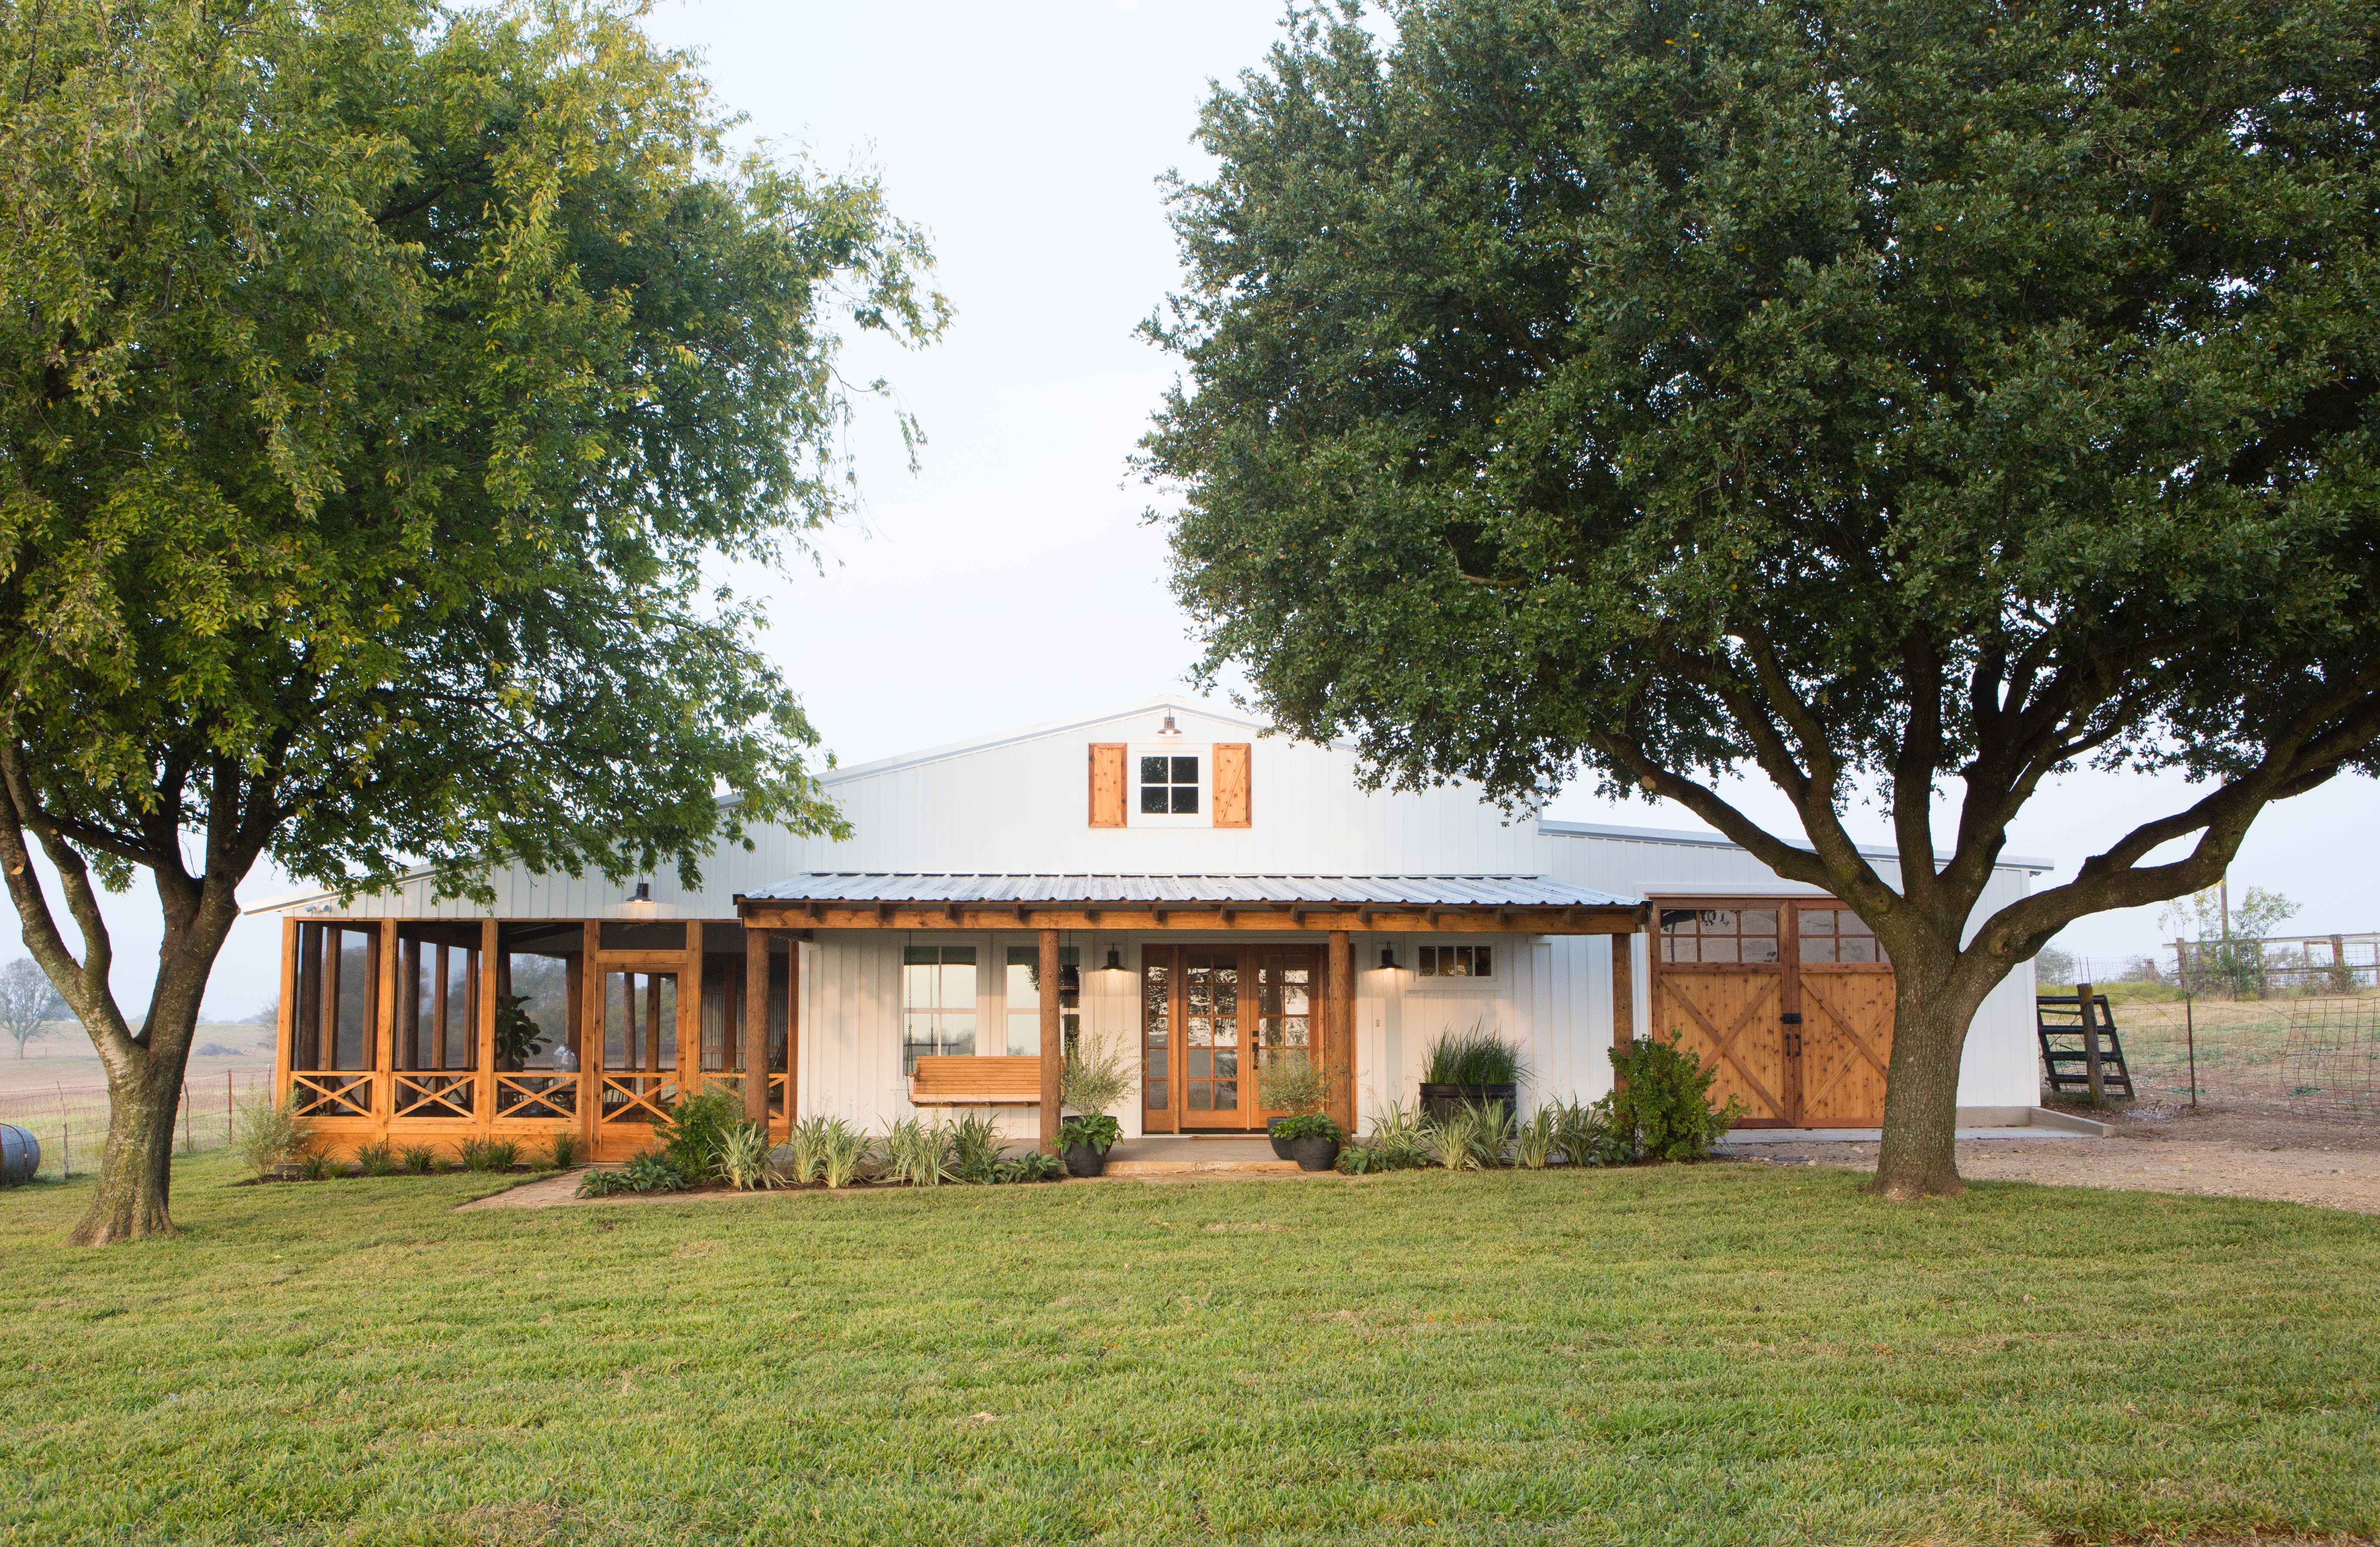 The First Ever 39 Fixer Upper 39 Proposal Just Happened Purewow